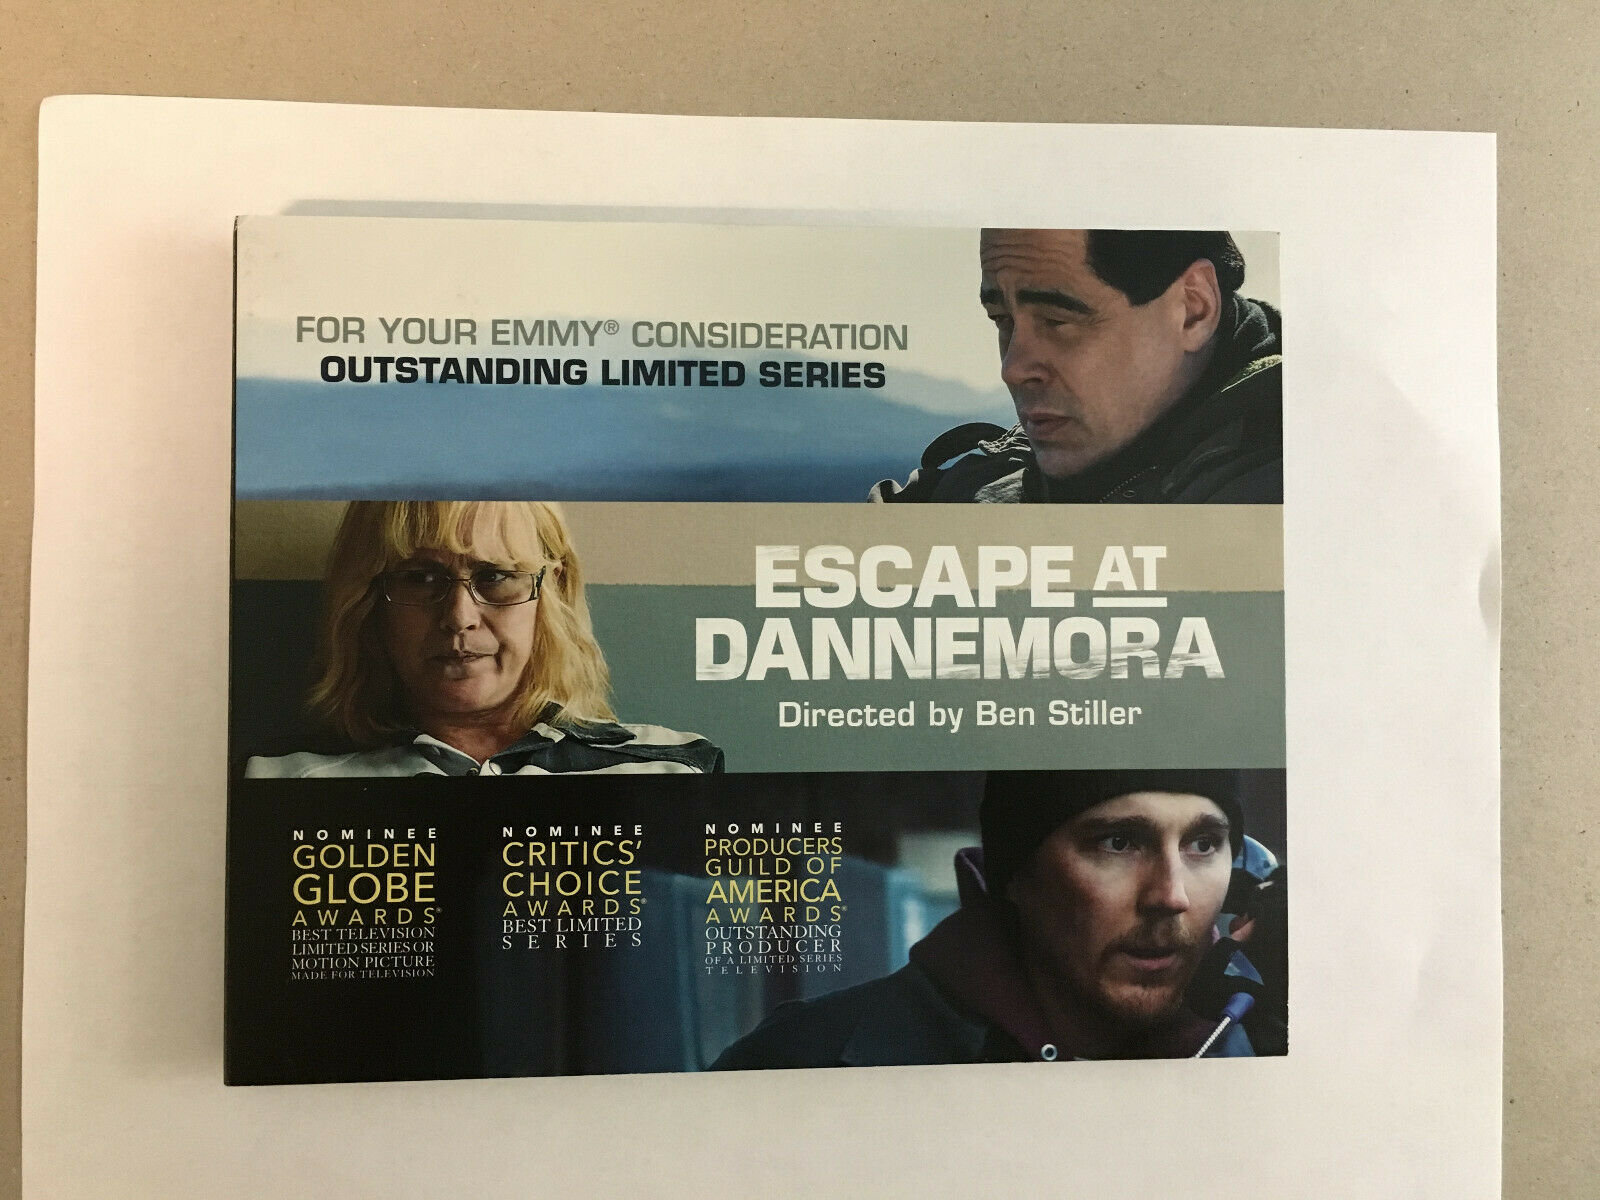 copy of FYC 2019 ESCAPE AT DANNEMORA DVD (2) Pressbook EMMY SHOWTIME